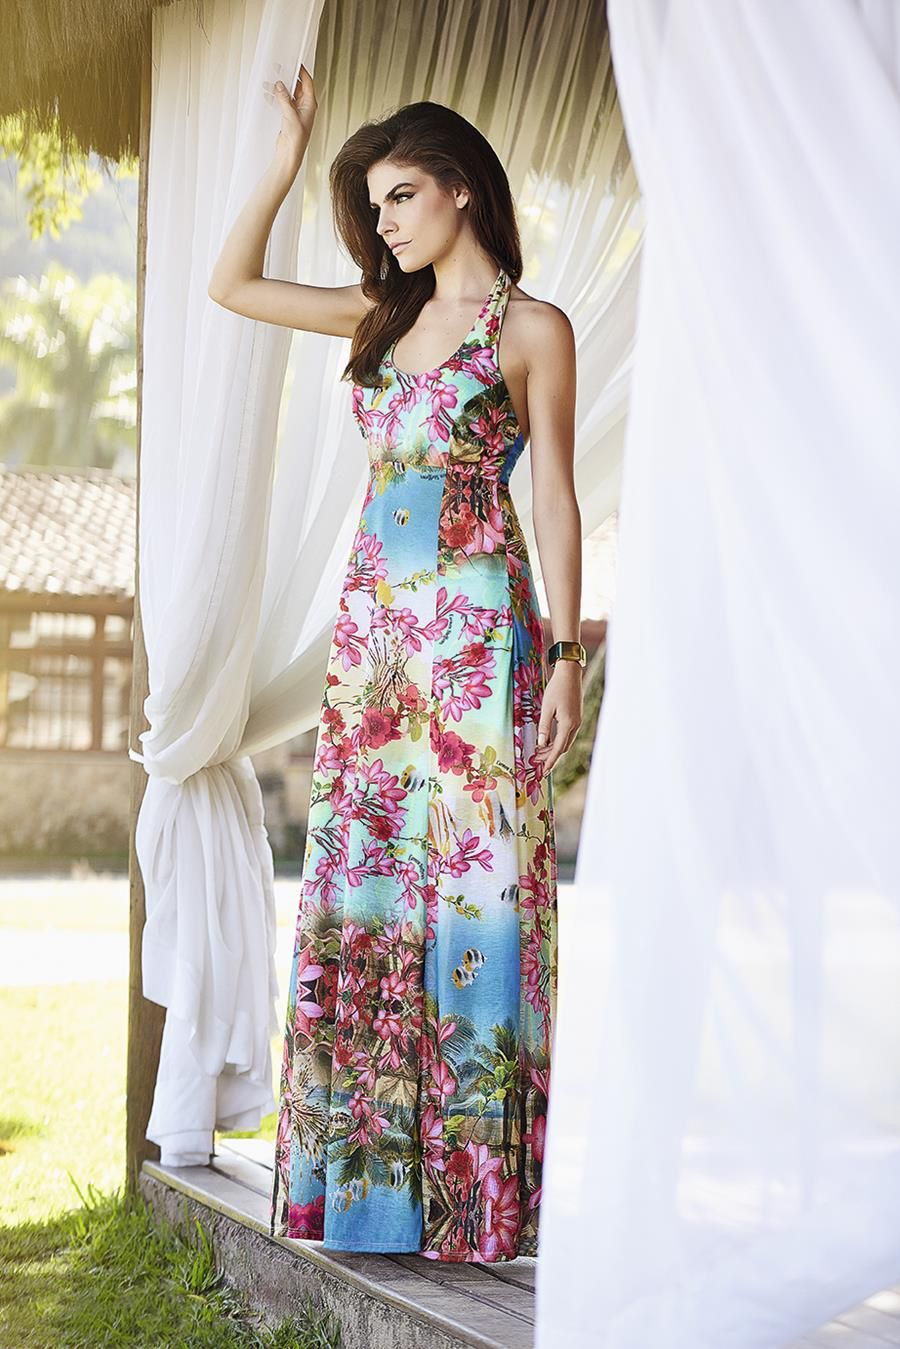 Image from http://profashioneye.com/wp-content/uploads/2014/08/Carmen-Steffens-2015-Summer-Dress-1.jpg.